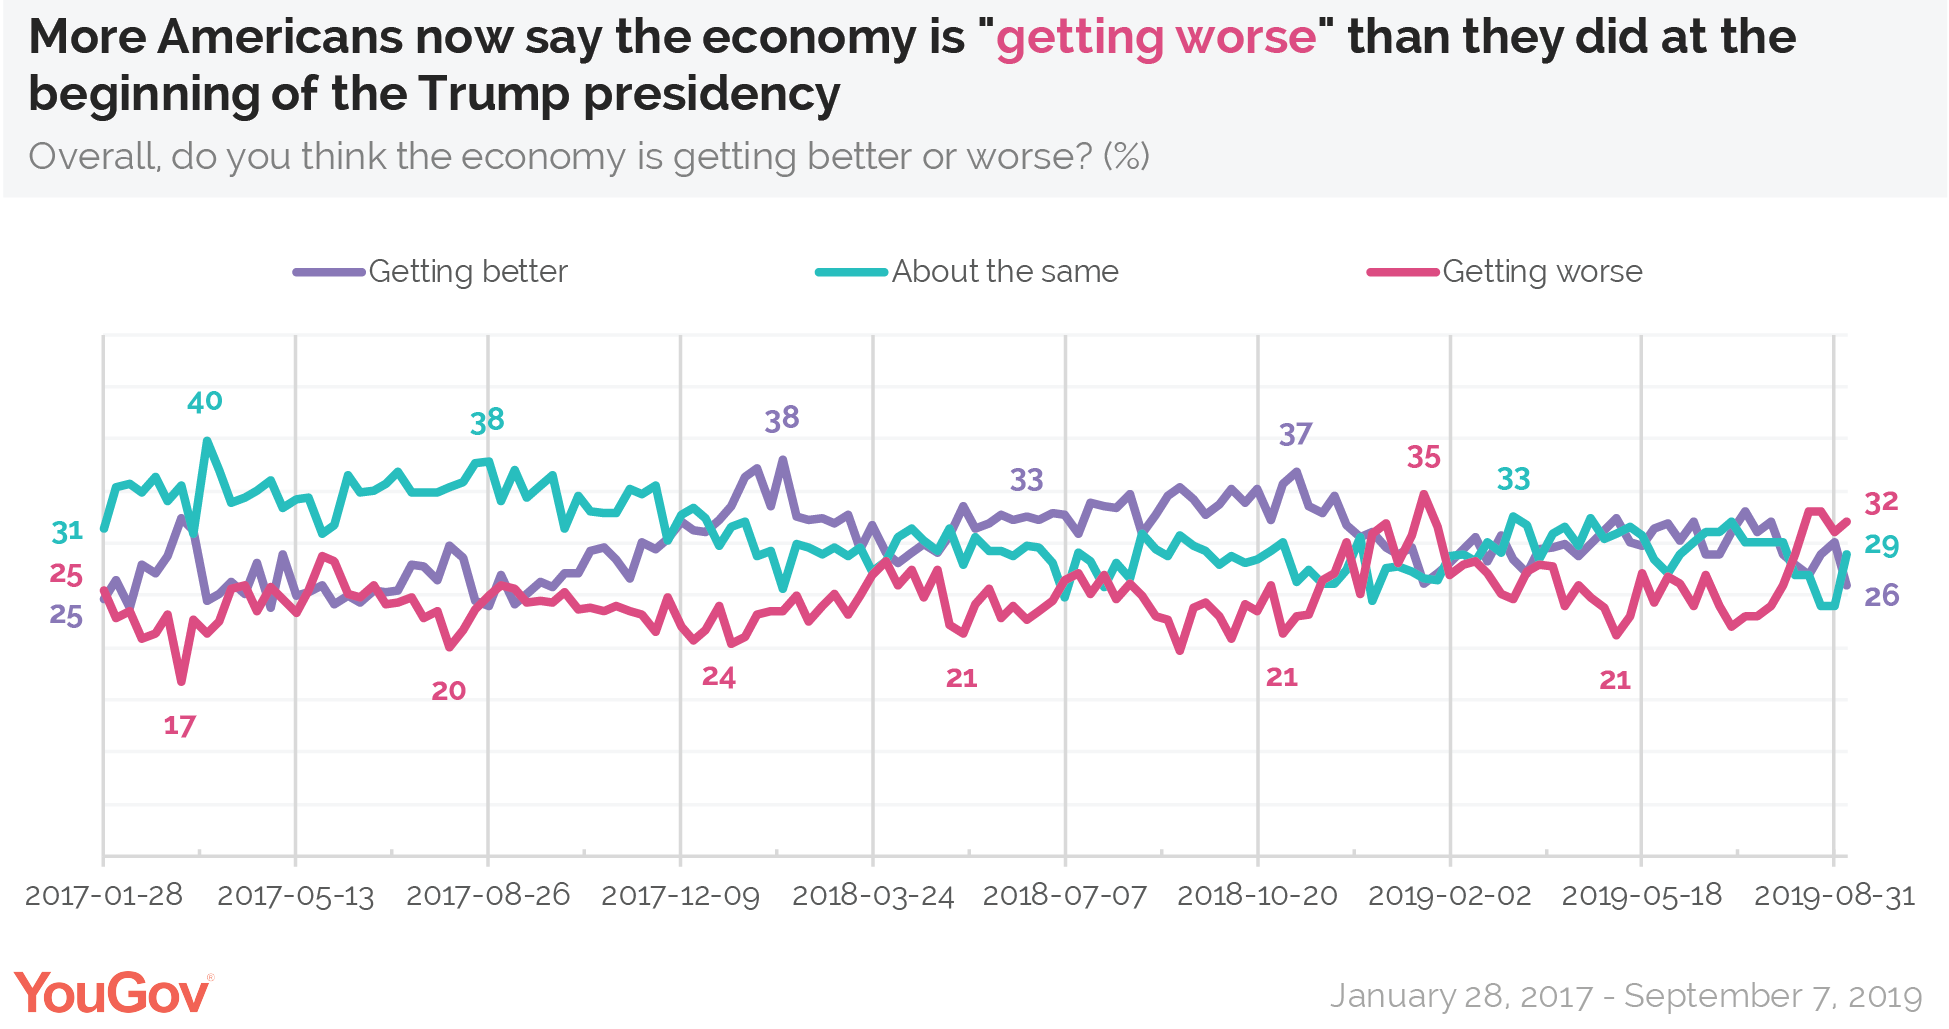 More Americans now say the economy is getting worse than they did at the beginning of the Trump presidency